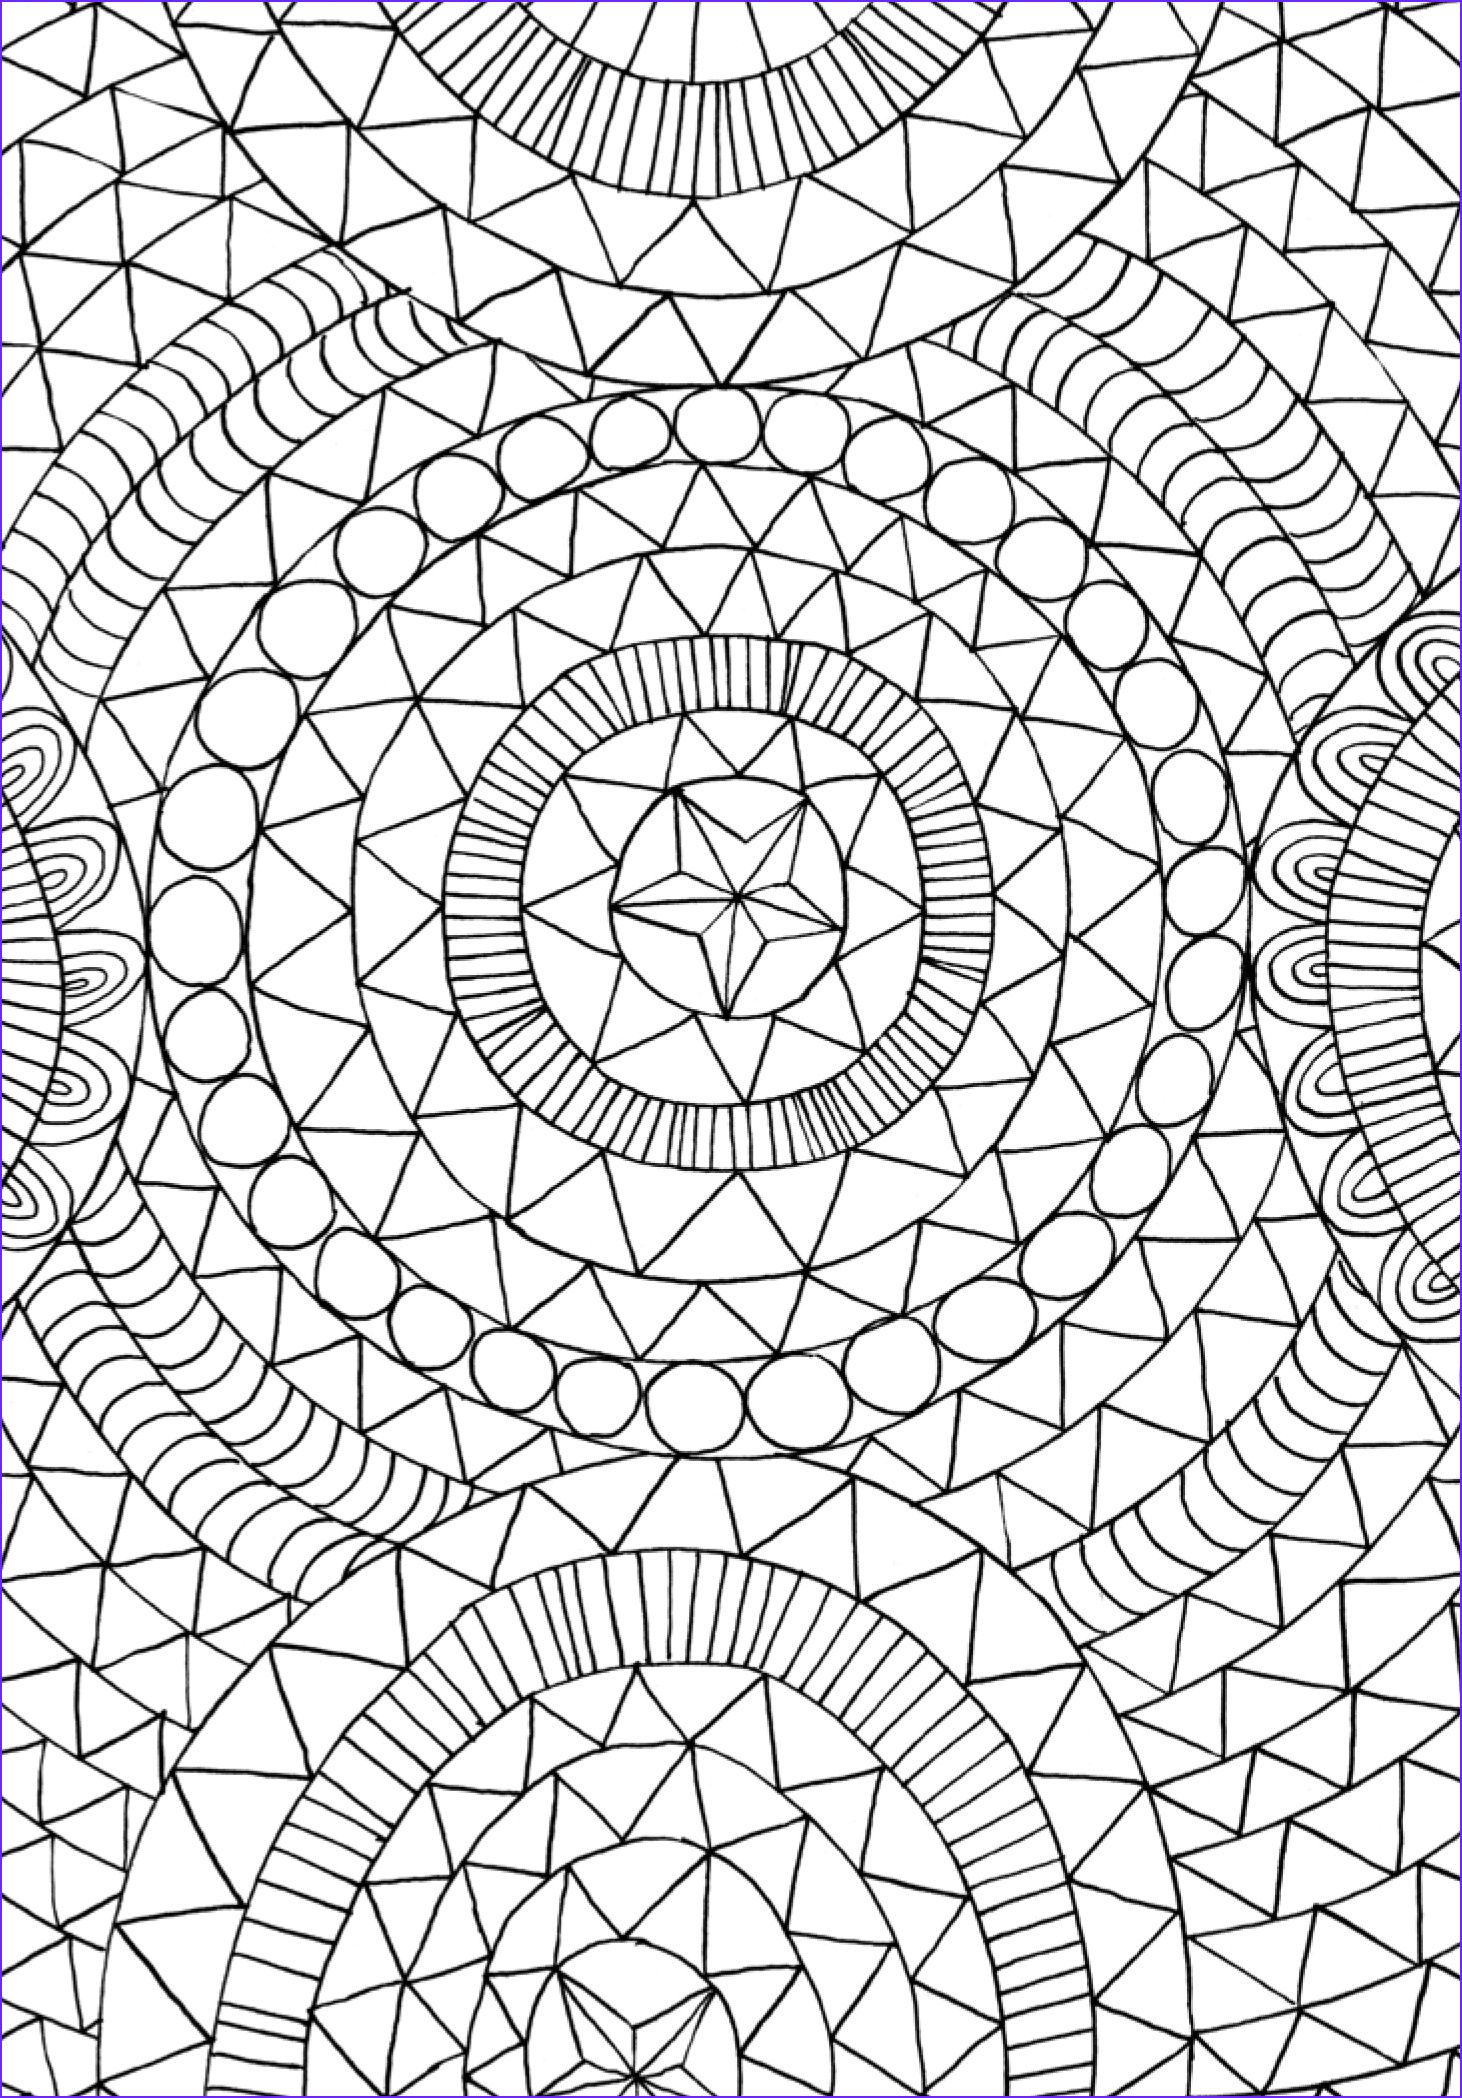 Mindfulness Coloring Pages Best Coloring Pages For Kids Stress Free Coloring Book Stress Free Coloring Coloring Books [ 2098 x 1462 Pixel ]